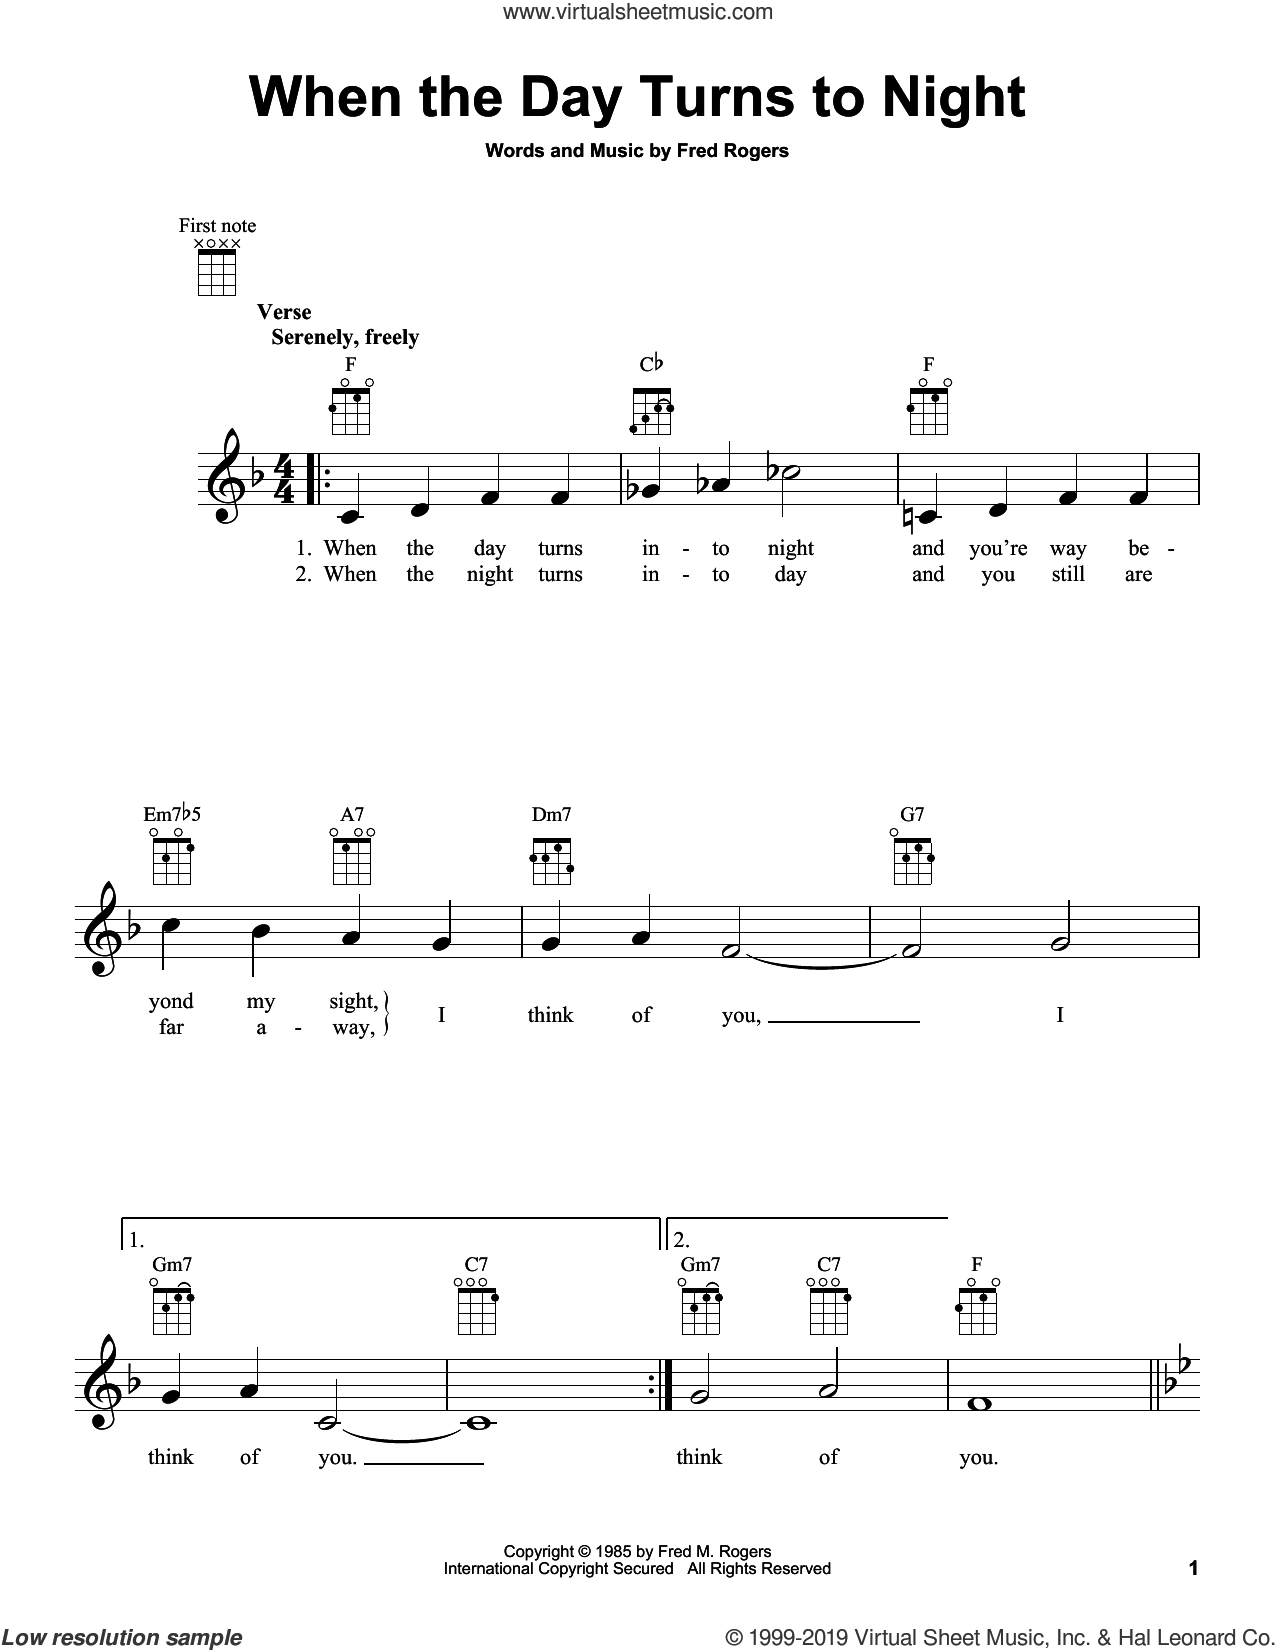 When The Day Turns To Night (from Mister Rogers' Neighborhood) sheet music for ukulele by Fred Rogers and Mister Rogers, intermediate skill level